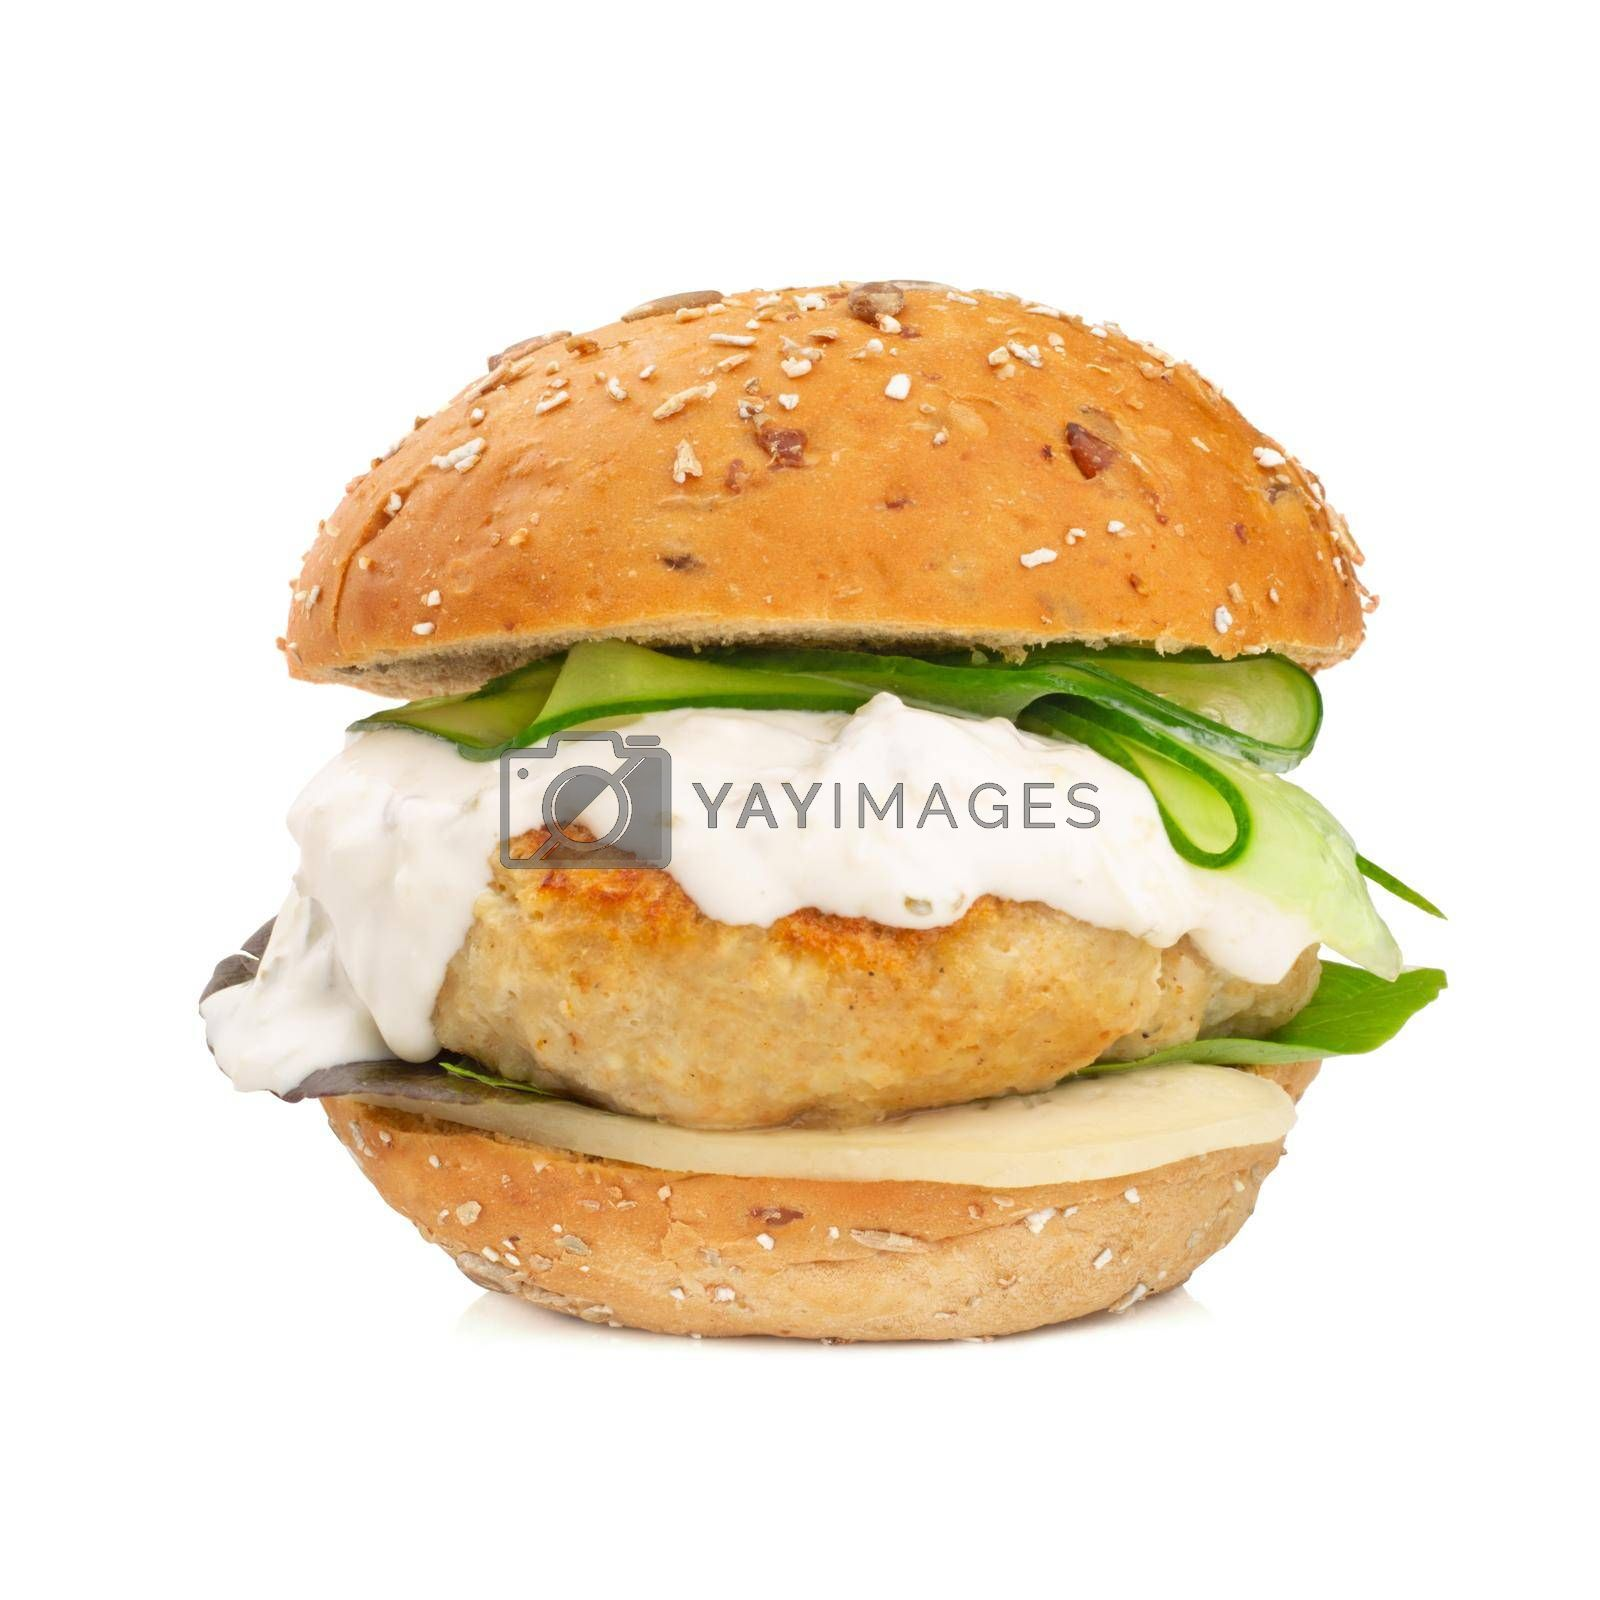 Fishburger fish burger with cod cutlet cucumber lettuce goat cheese dzatziki tartarus sauce and grain cereal bread isolated on white background